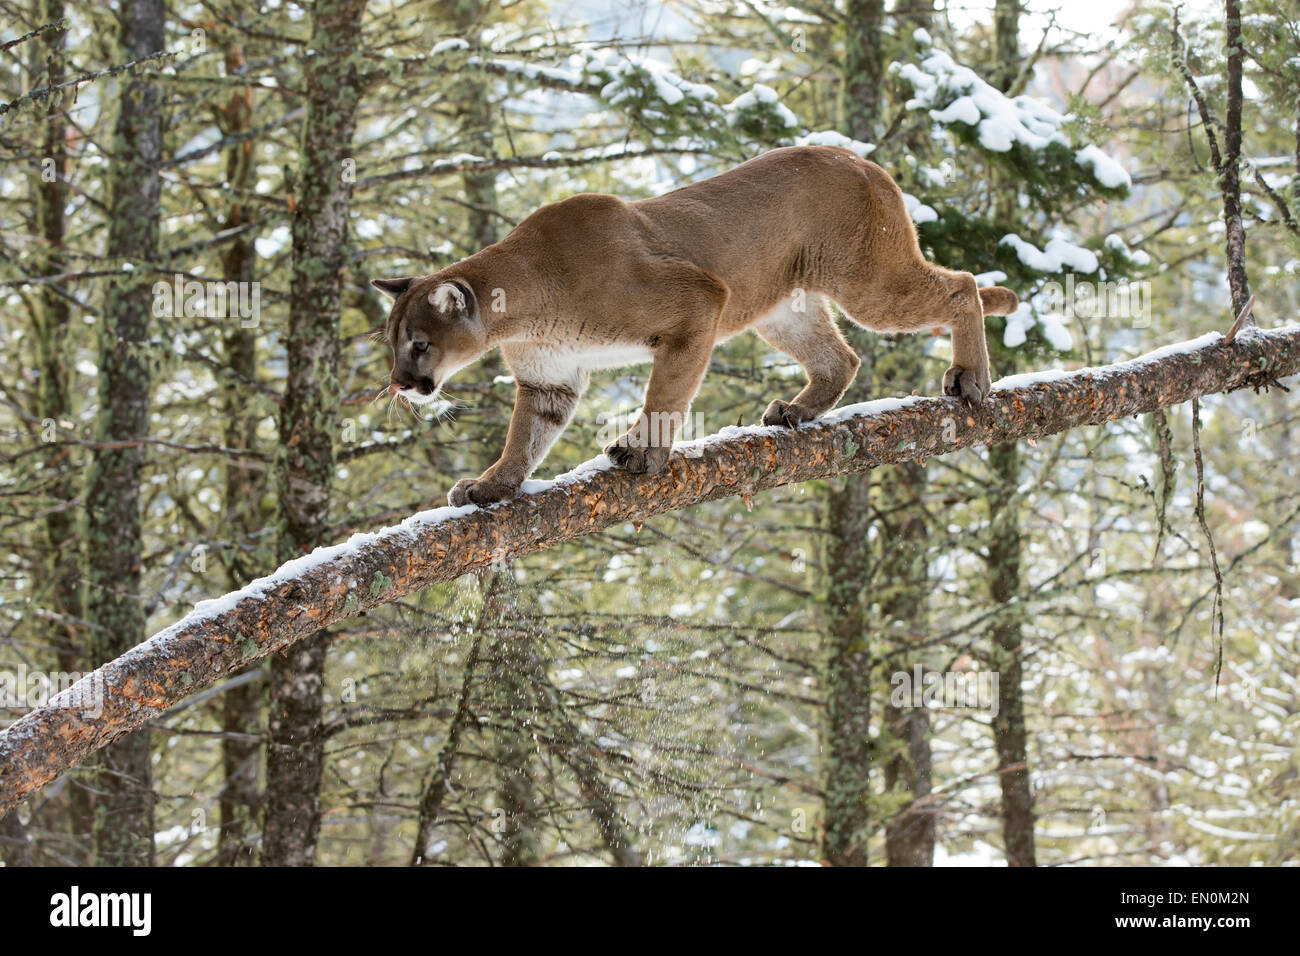 Mountain Lion (Felis concolor) on a branch, climbing a tree - Stock Image